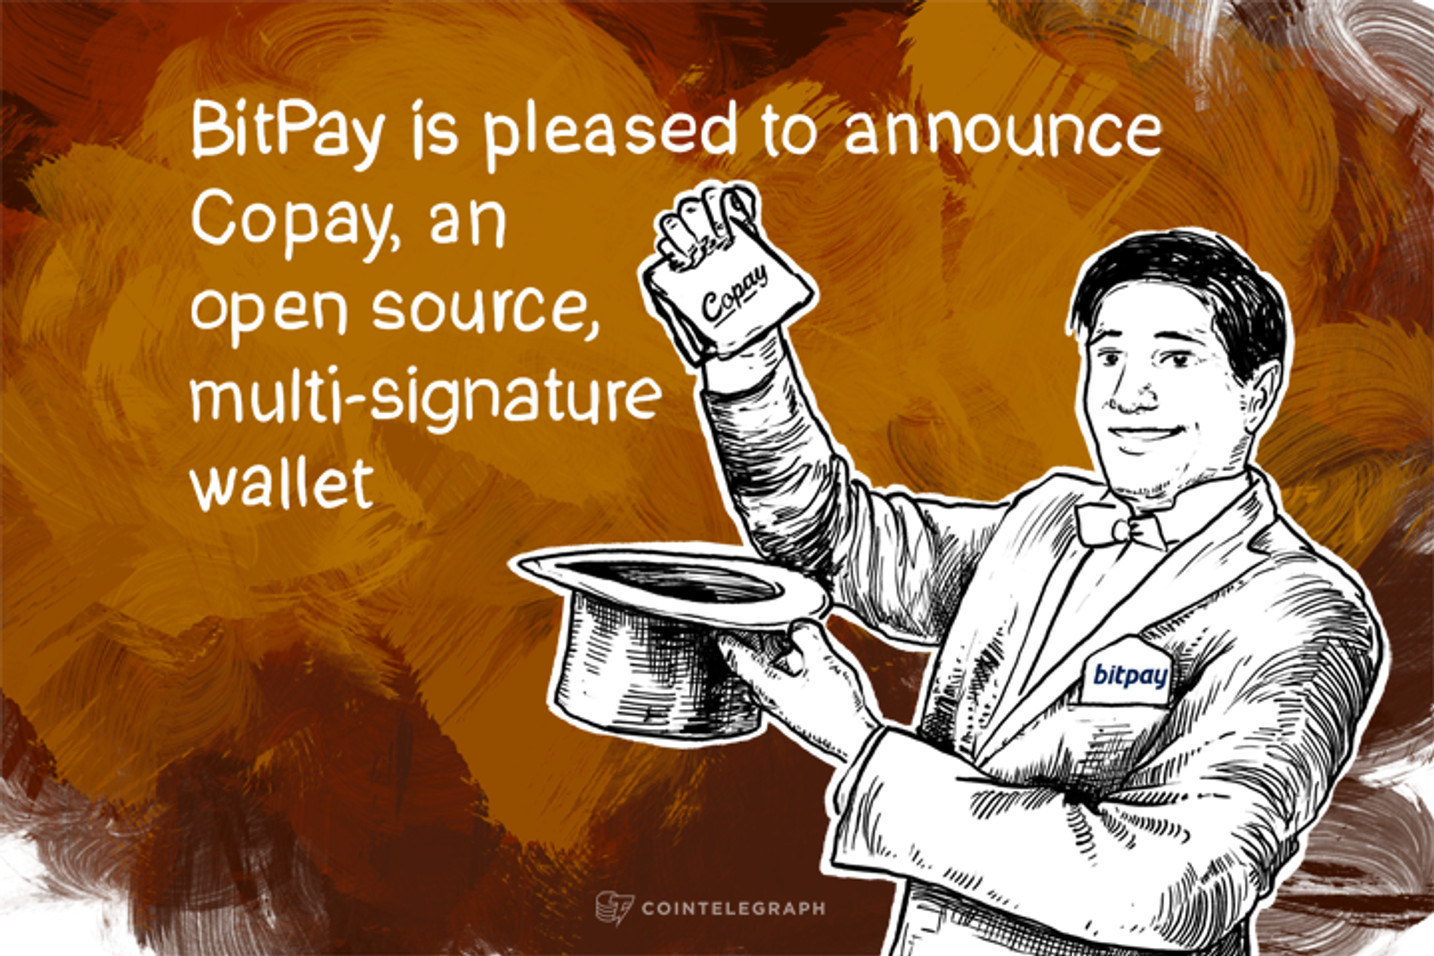 BitPay is pleased to announce Copay, an open source, multi-signature wallet